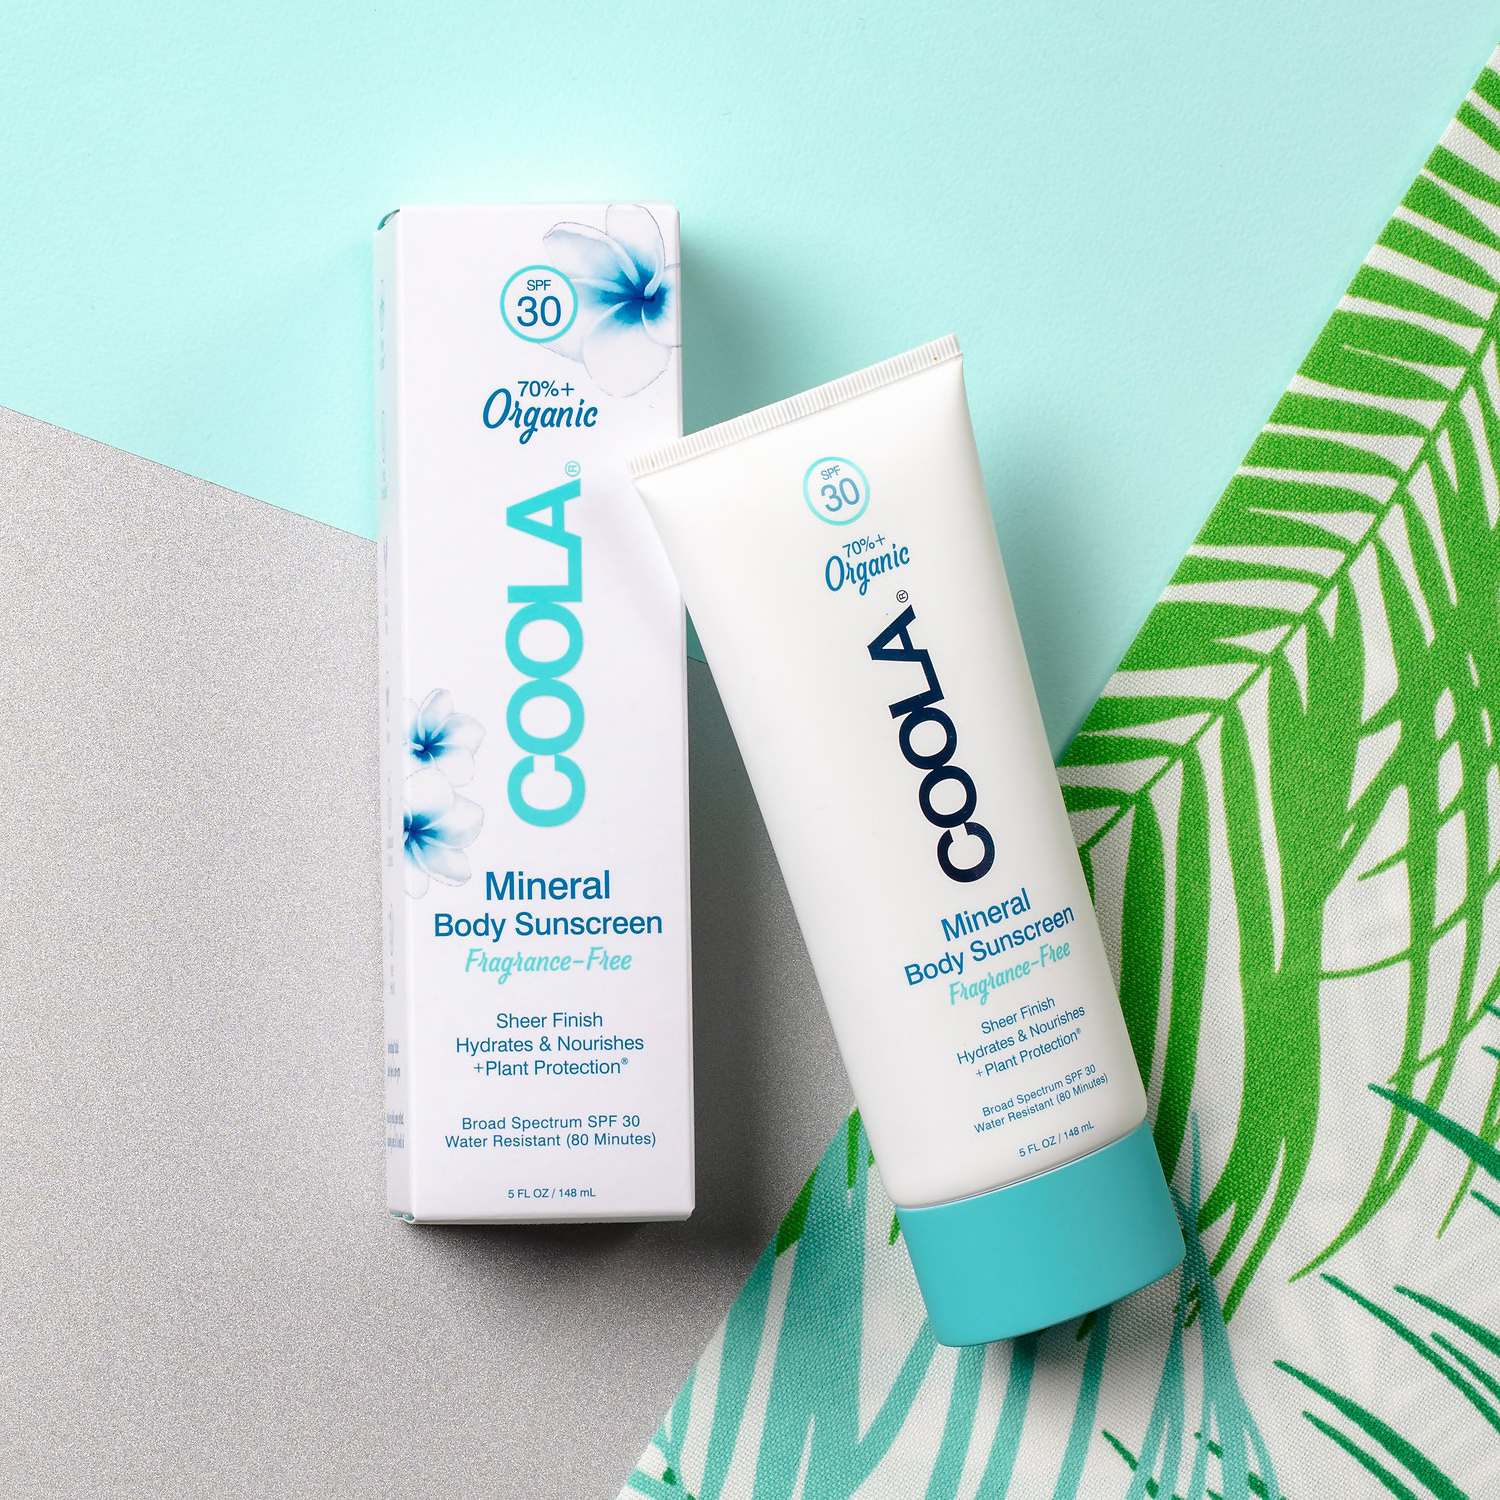 COOLA Mineral Body Sunscreen tube and box